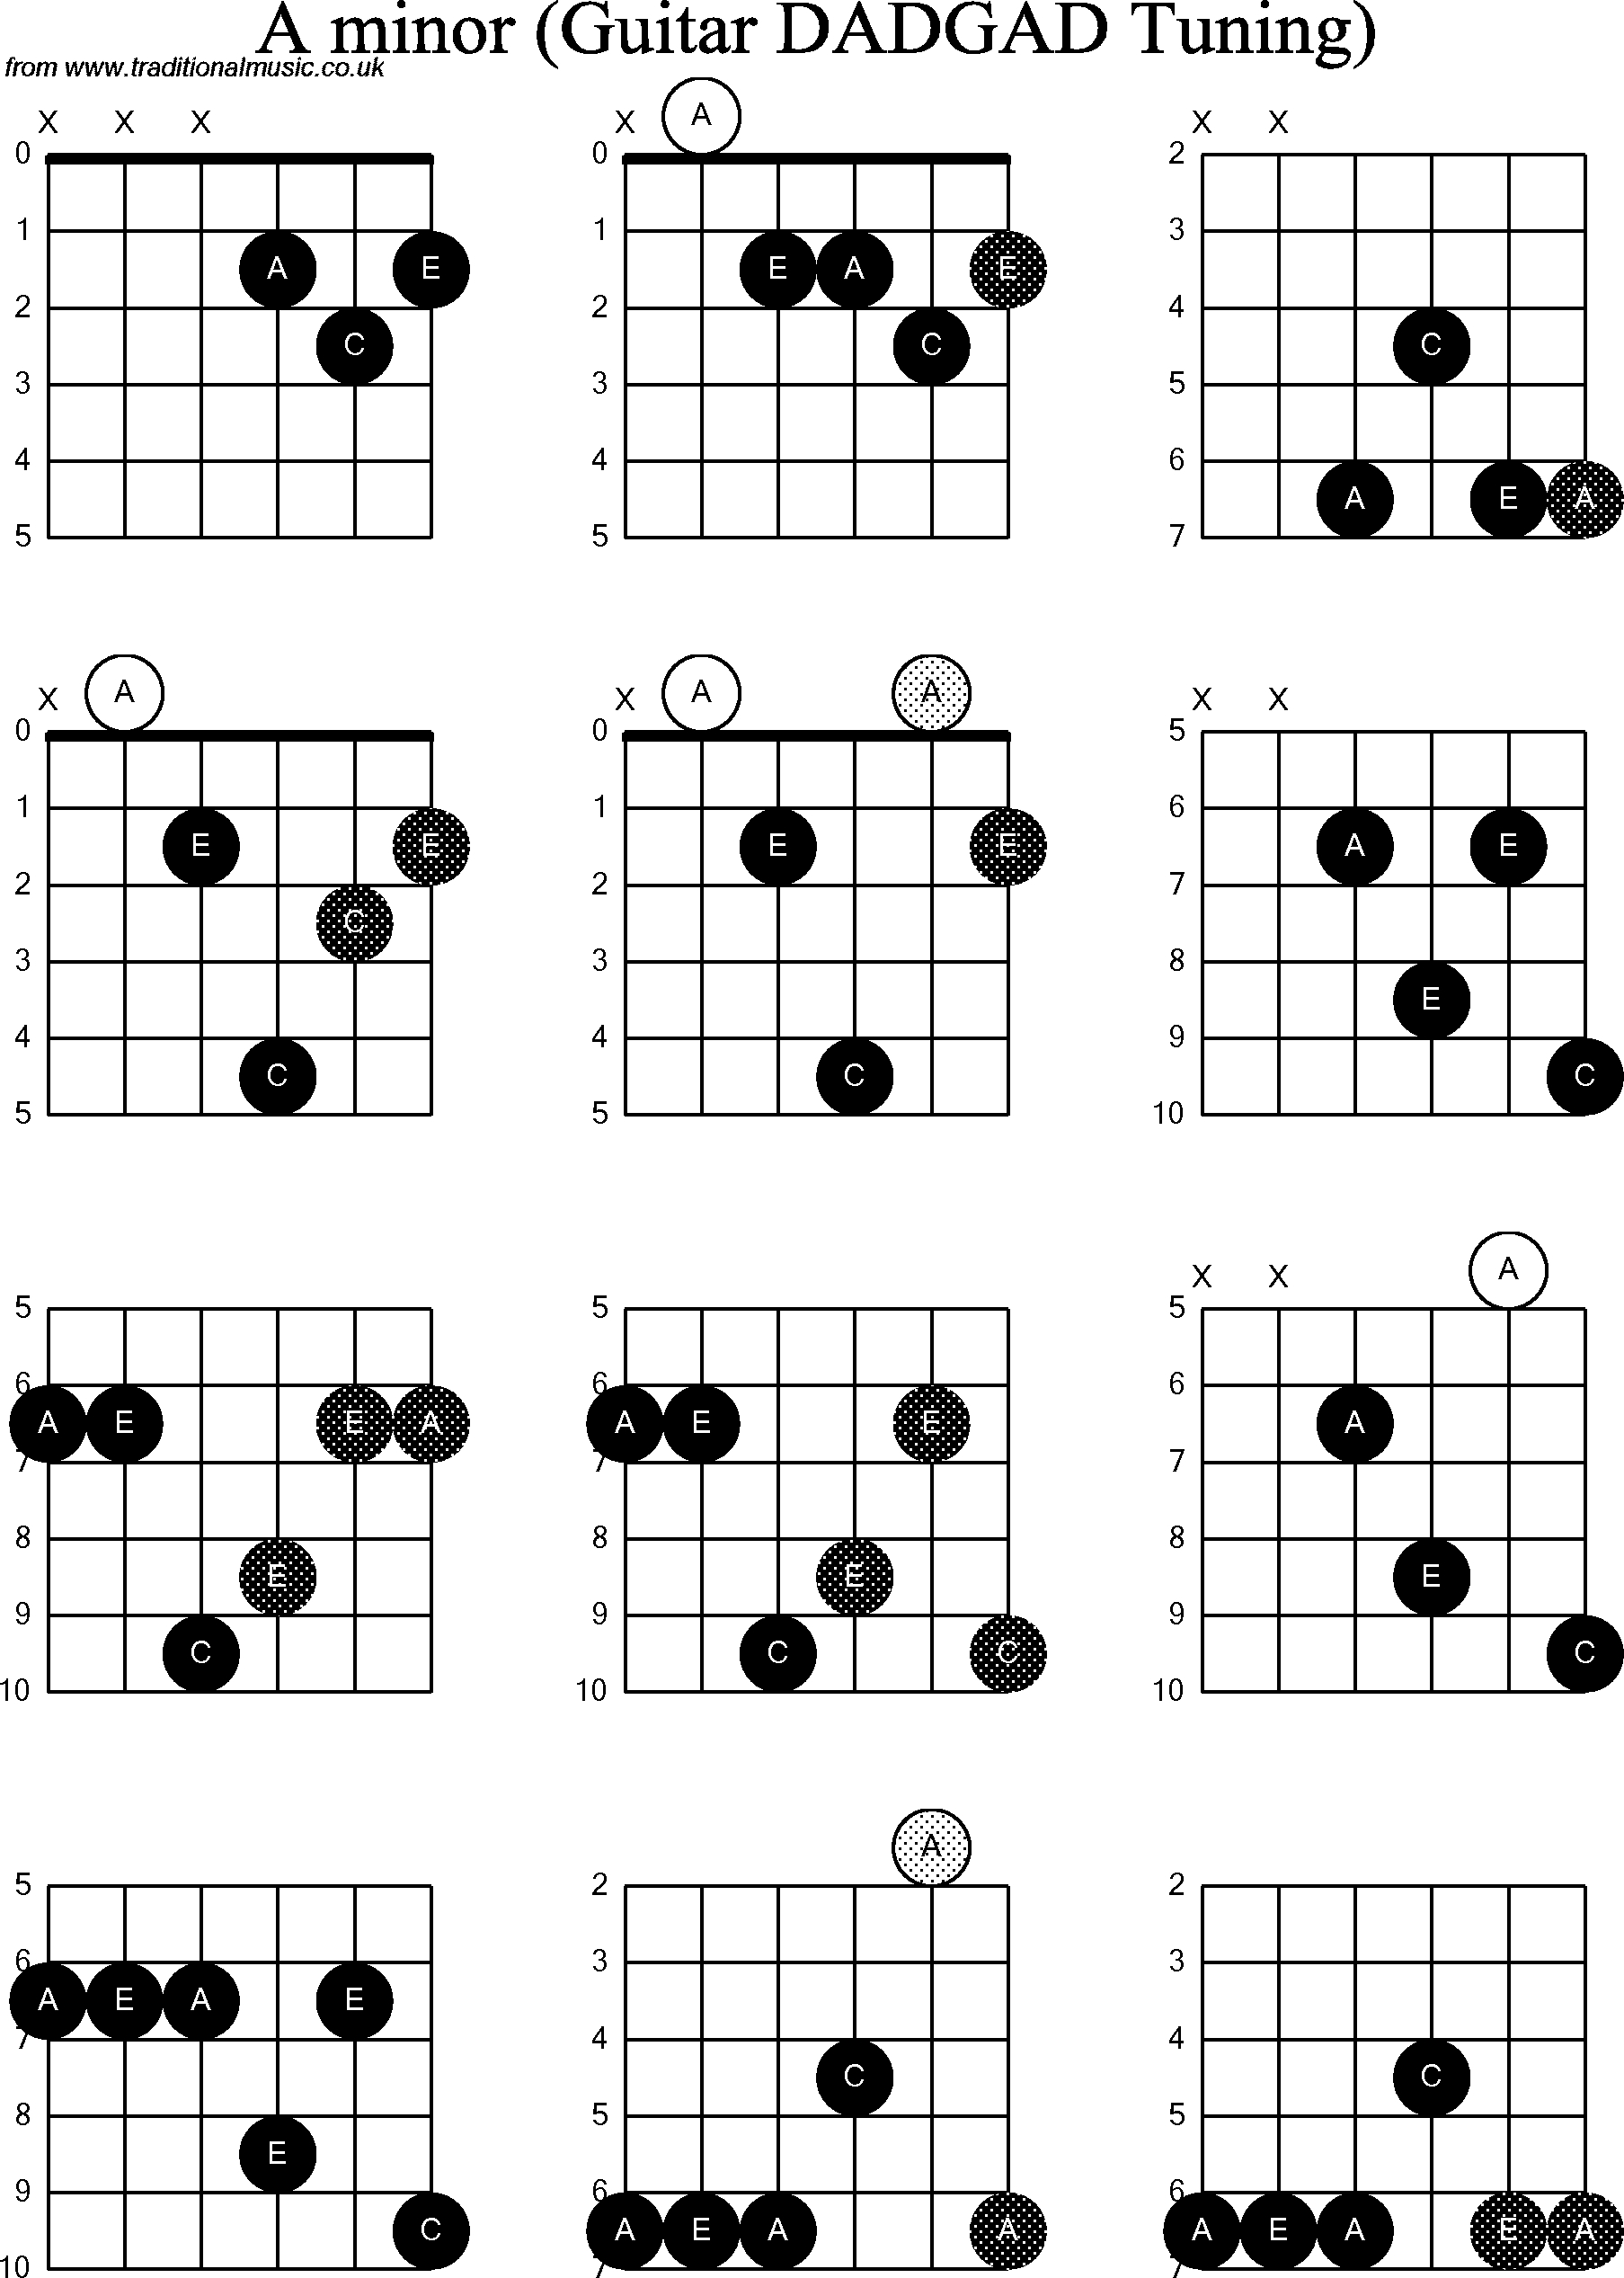 A Minor Chord Chord Diagrams D Modal Guitar Dadgad A Minor